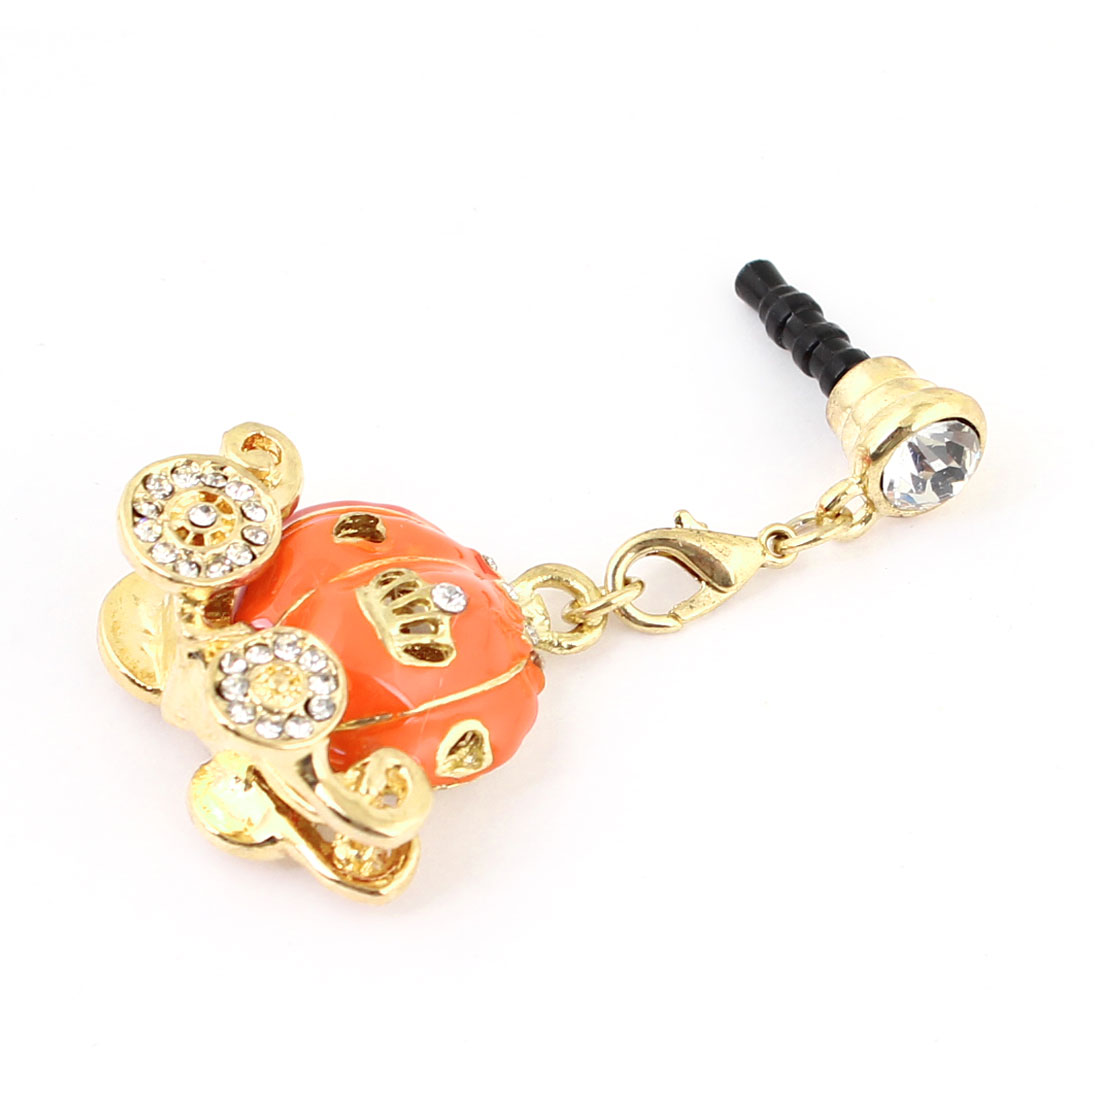 Phone PC Rhinestone Inlay Sled Pumpkin Pendant 3.5mm Plastic Dust Connector Stopper